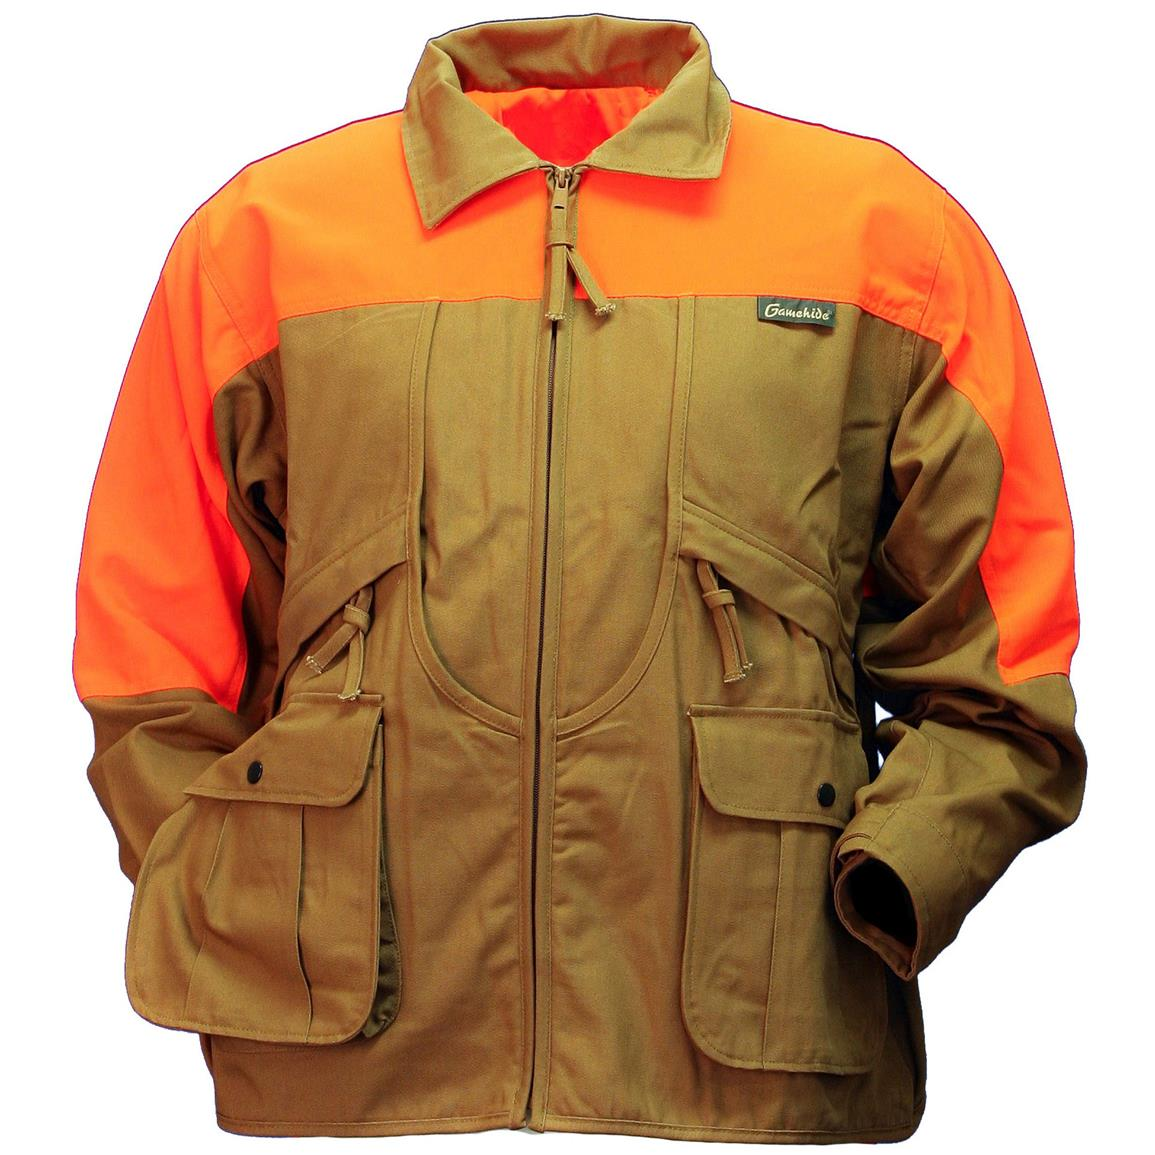 Gamehide Rooster Upland Jacket, Marsh Brown / Orange